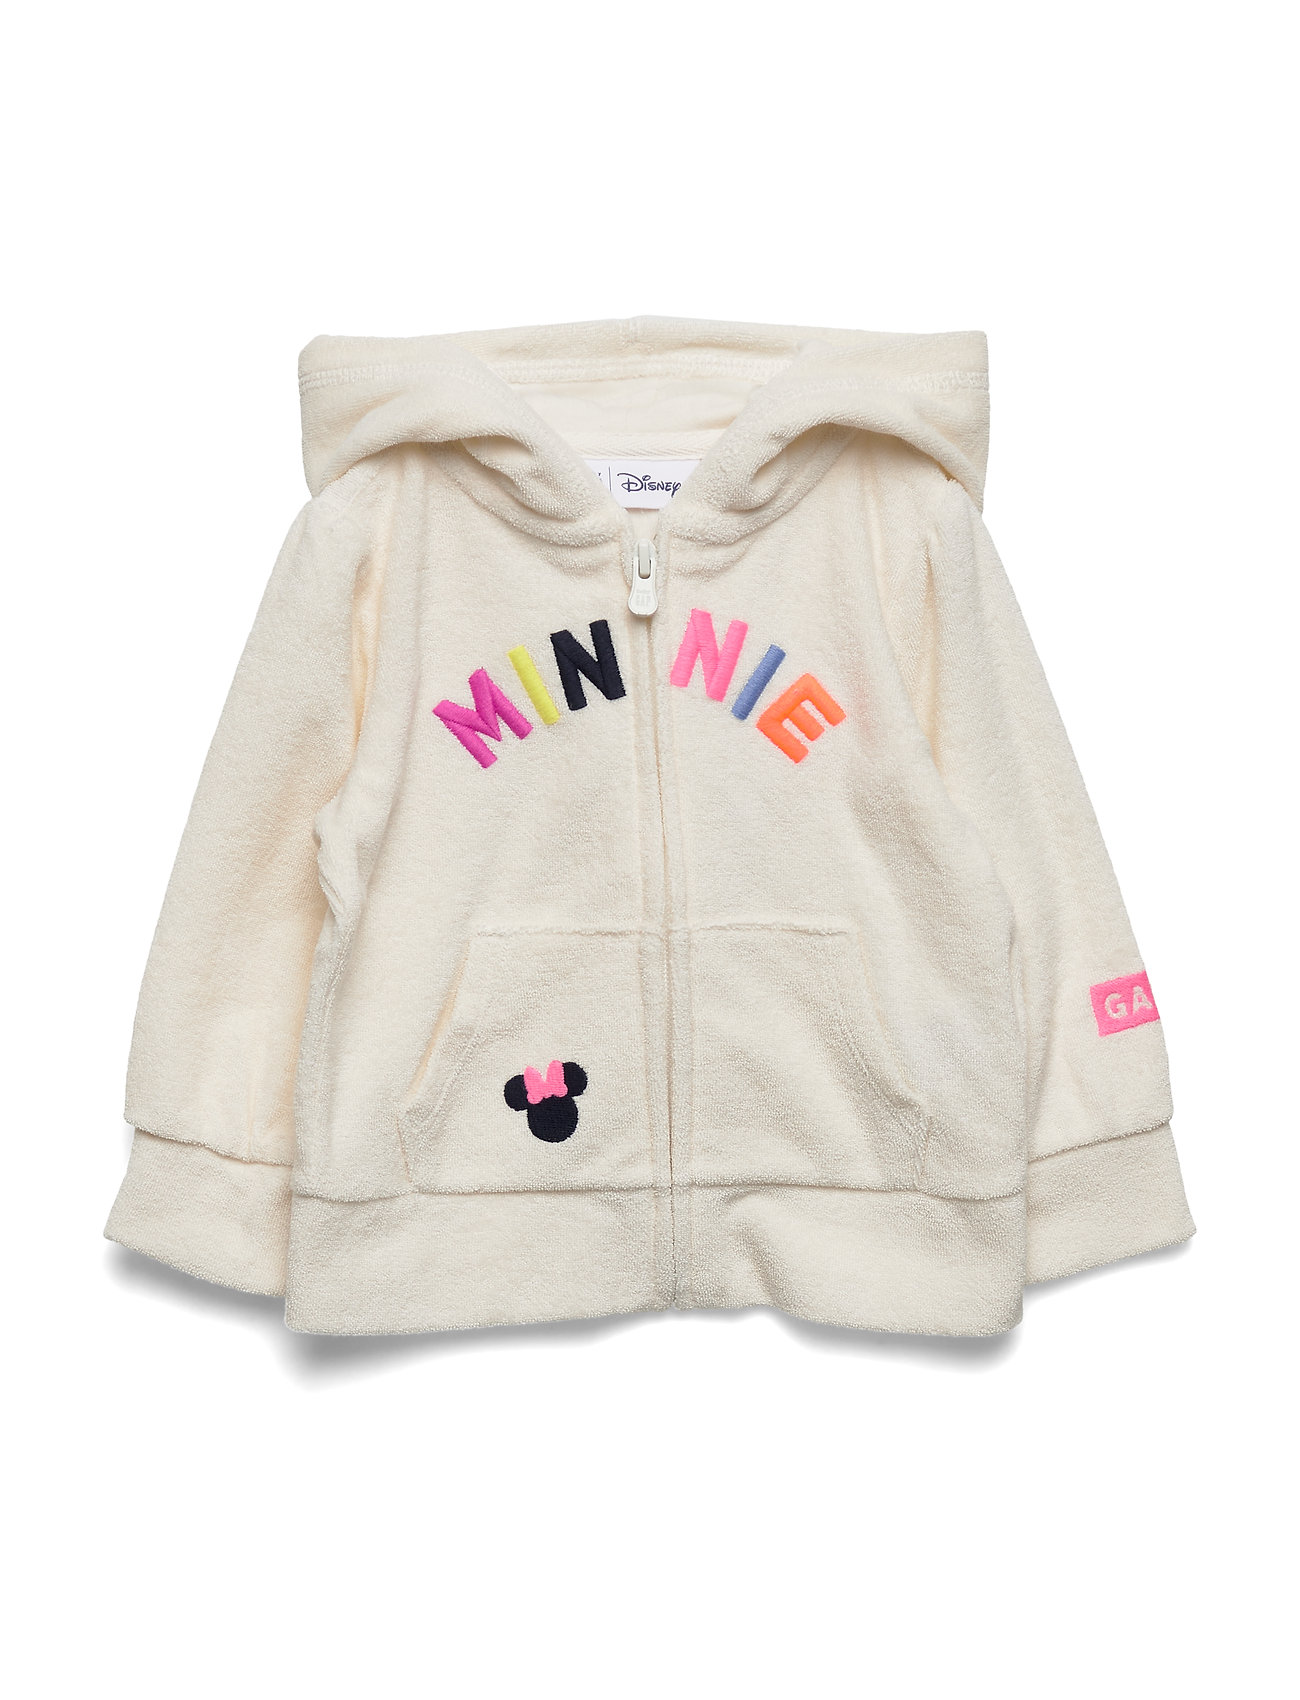 Image of Babygap | Disney Minnie Mouse Hoodie Hoodie Trøje Creme GAP (3412651433)